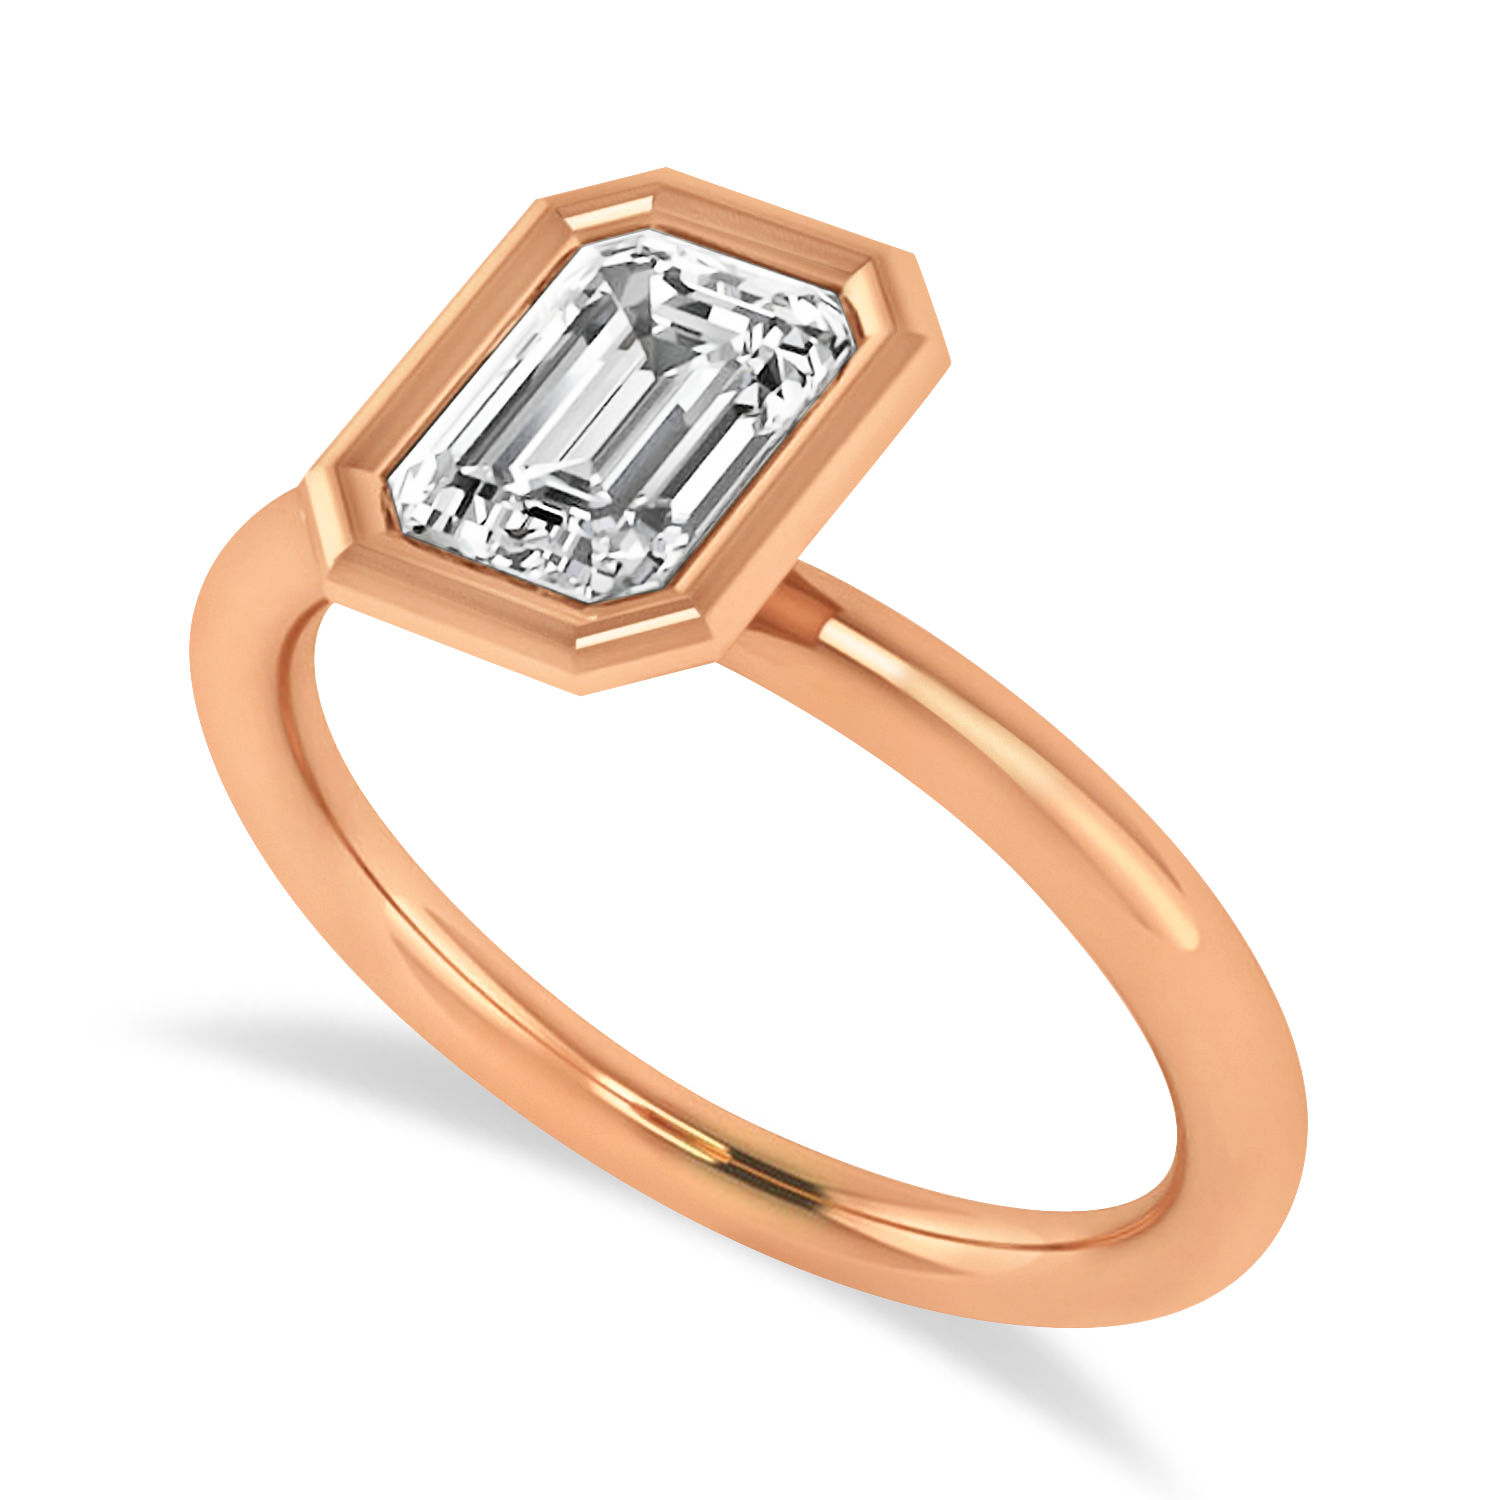 Emerald-Cut Bezel-Set Diamond Solitaire Ring 14k Rose Gold (1.00 ctw)